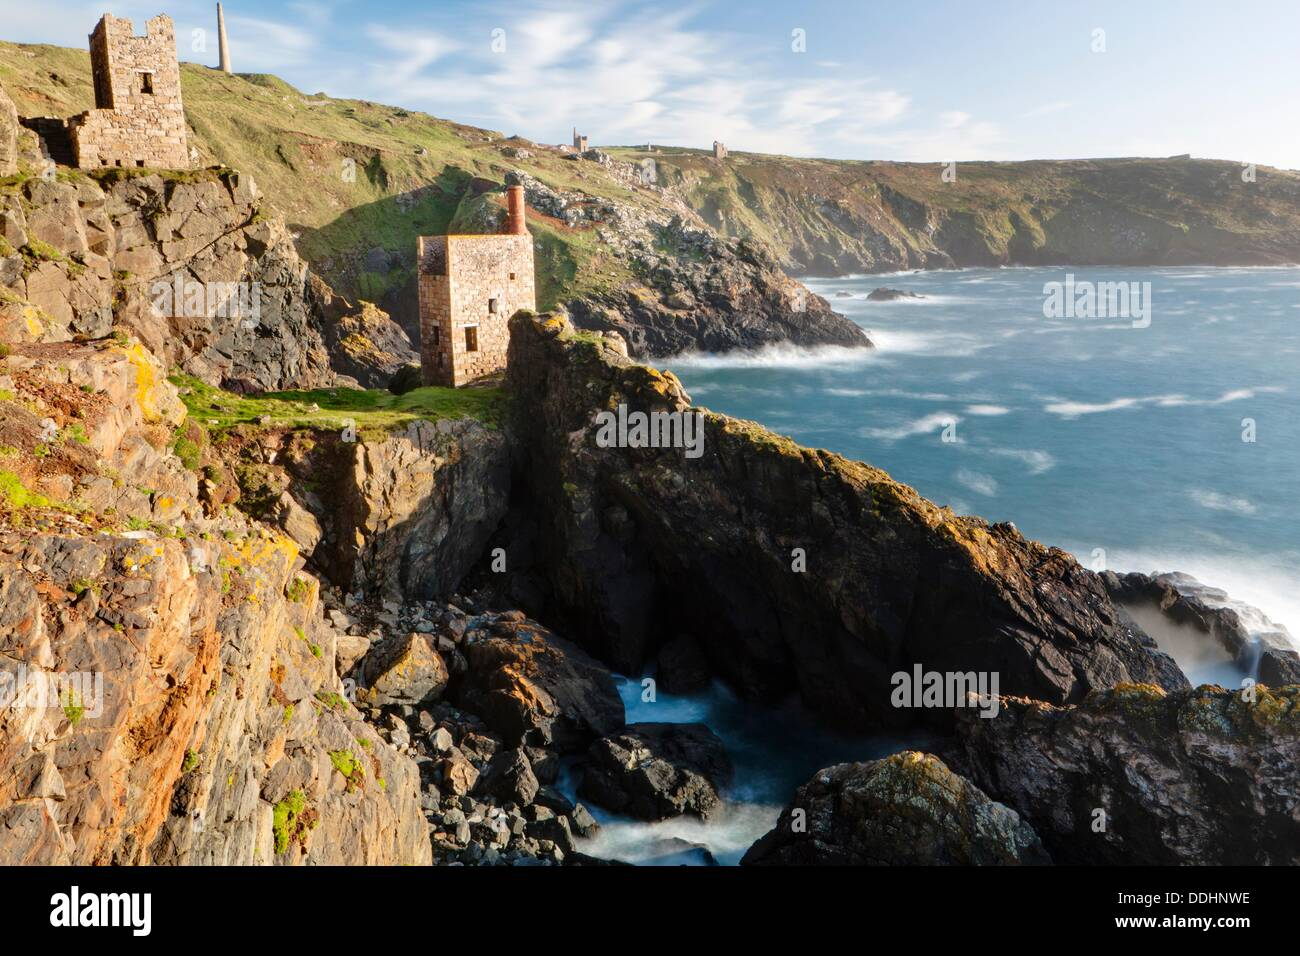 Crown Mine engine houses at Botallack, Cornwall, UK, Europe, The lower of the two engine houses was built in 1835 to pump water - Stock Image